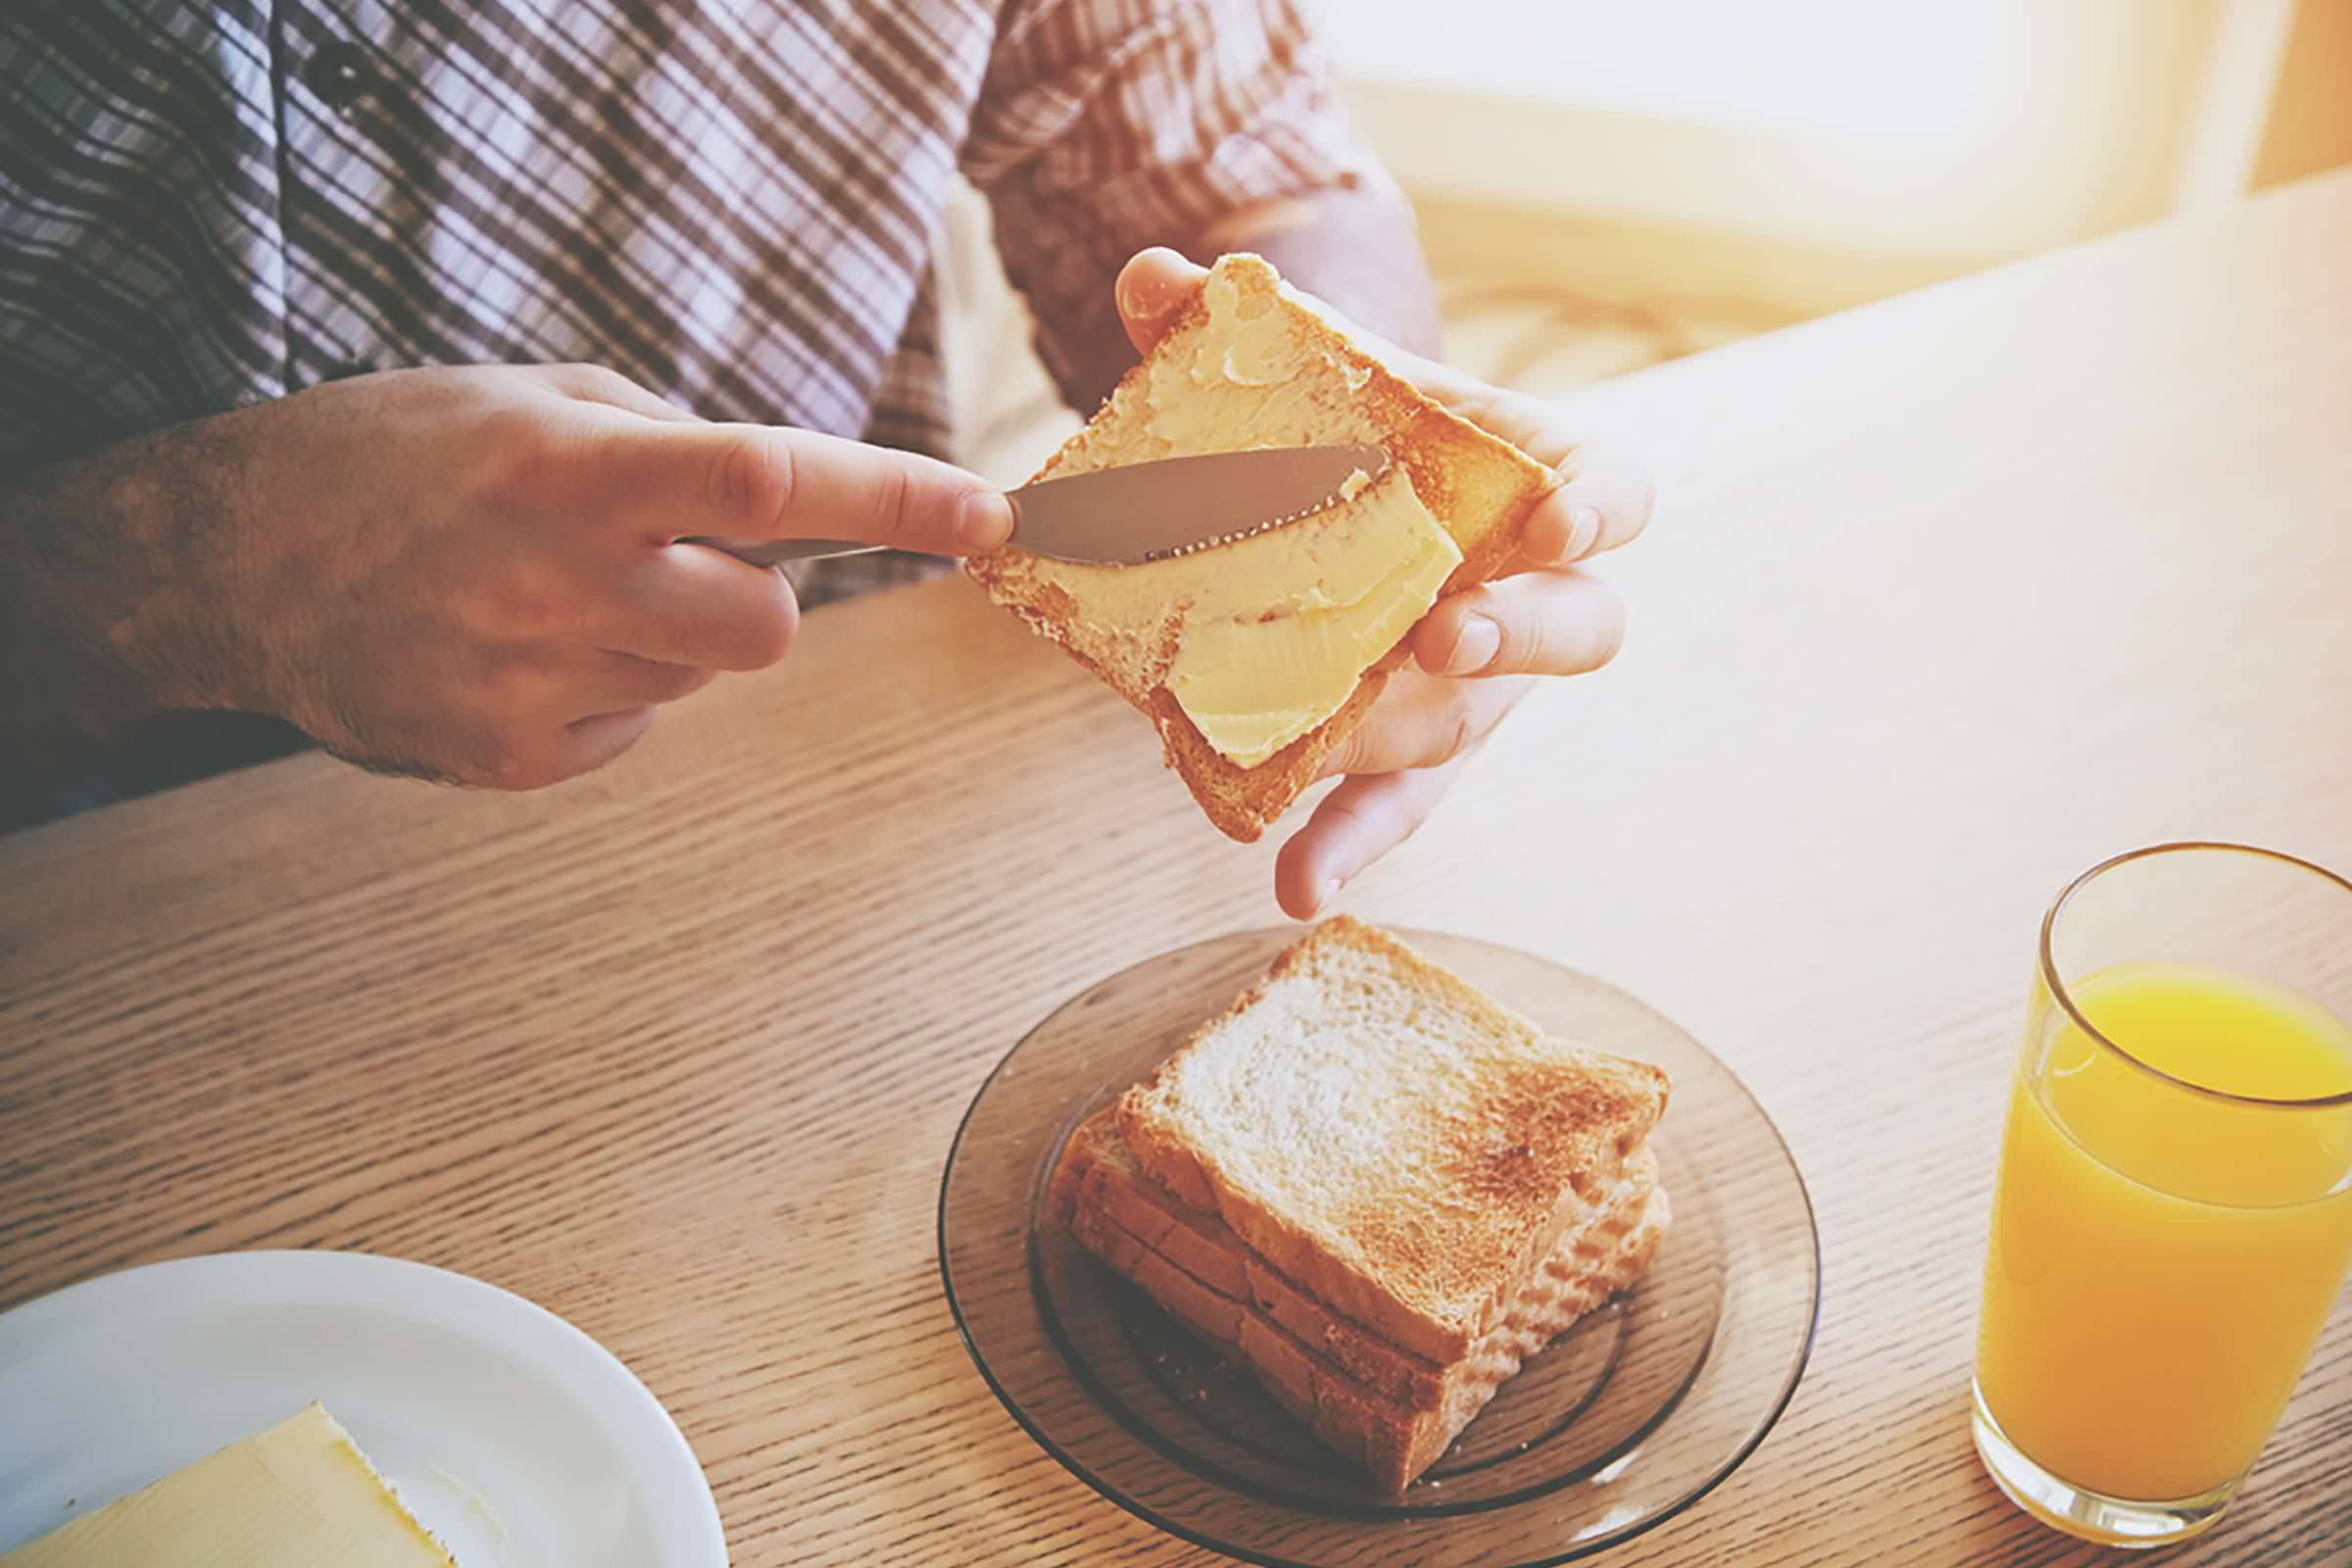 Buttering toast